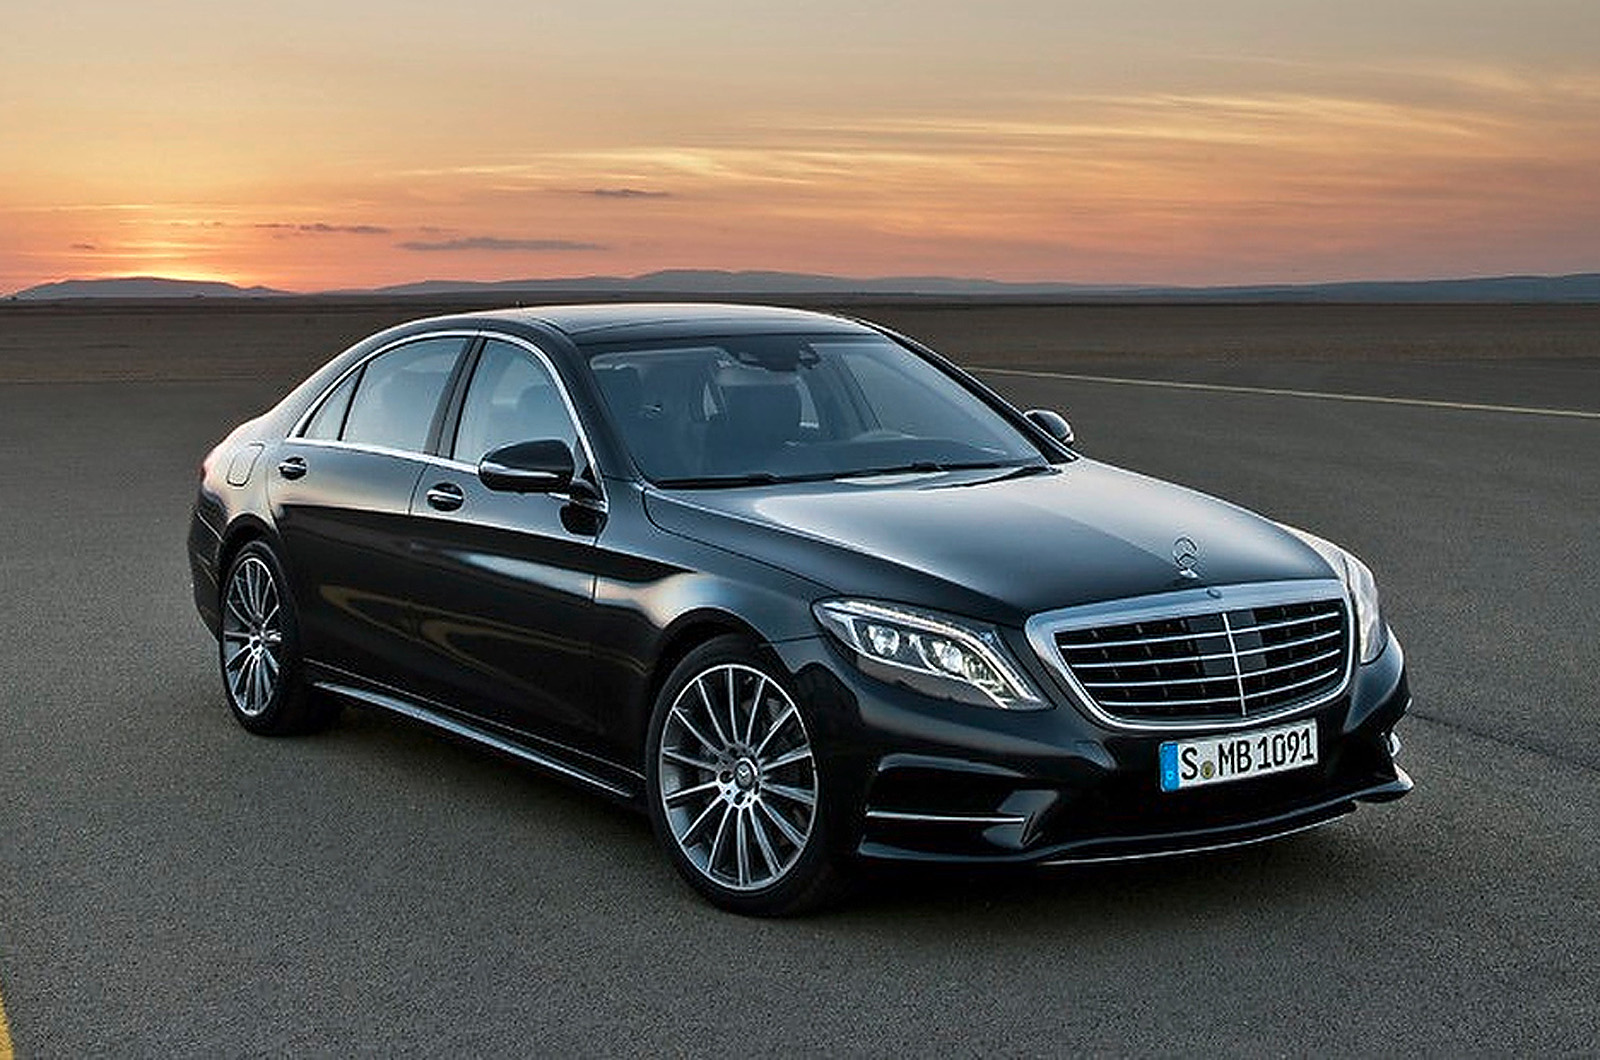 Uk pricing for new mercedes benz s class revealed for New mercedes benz price